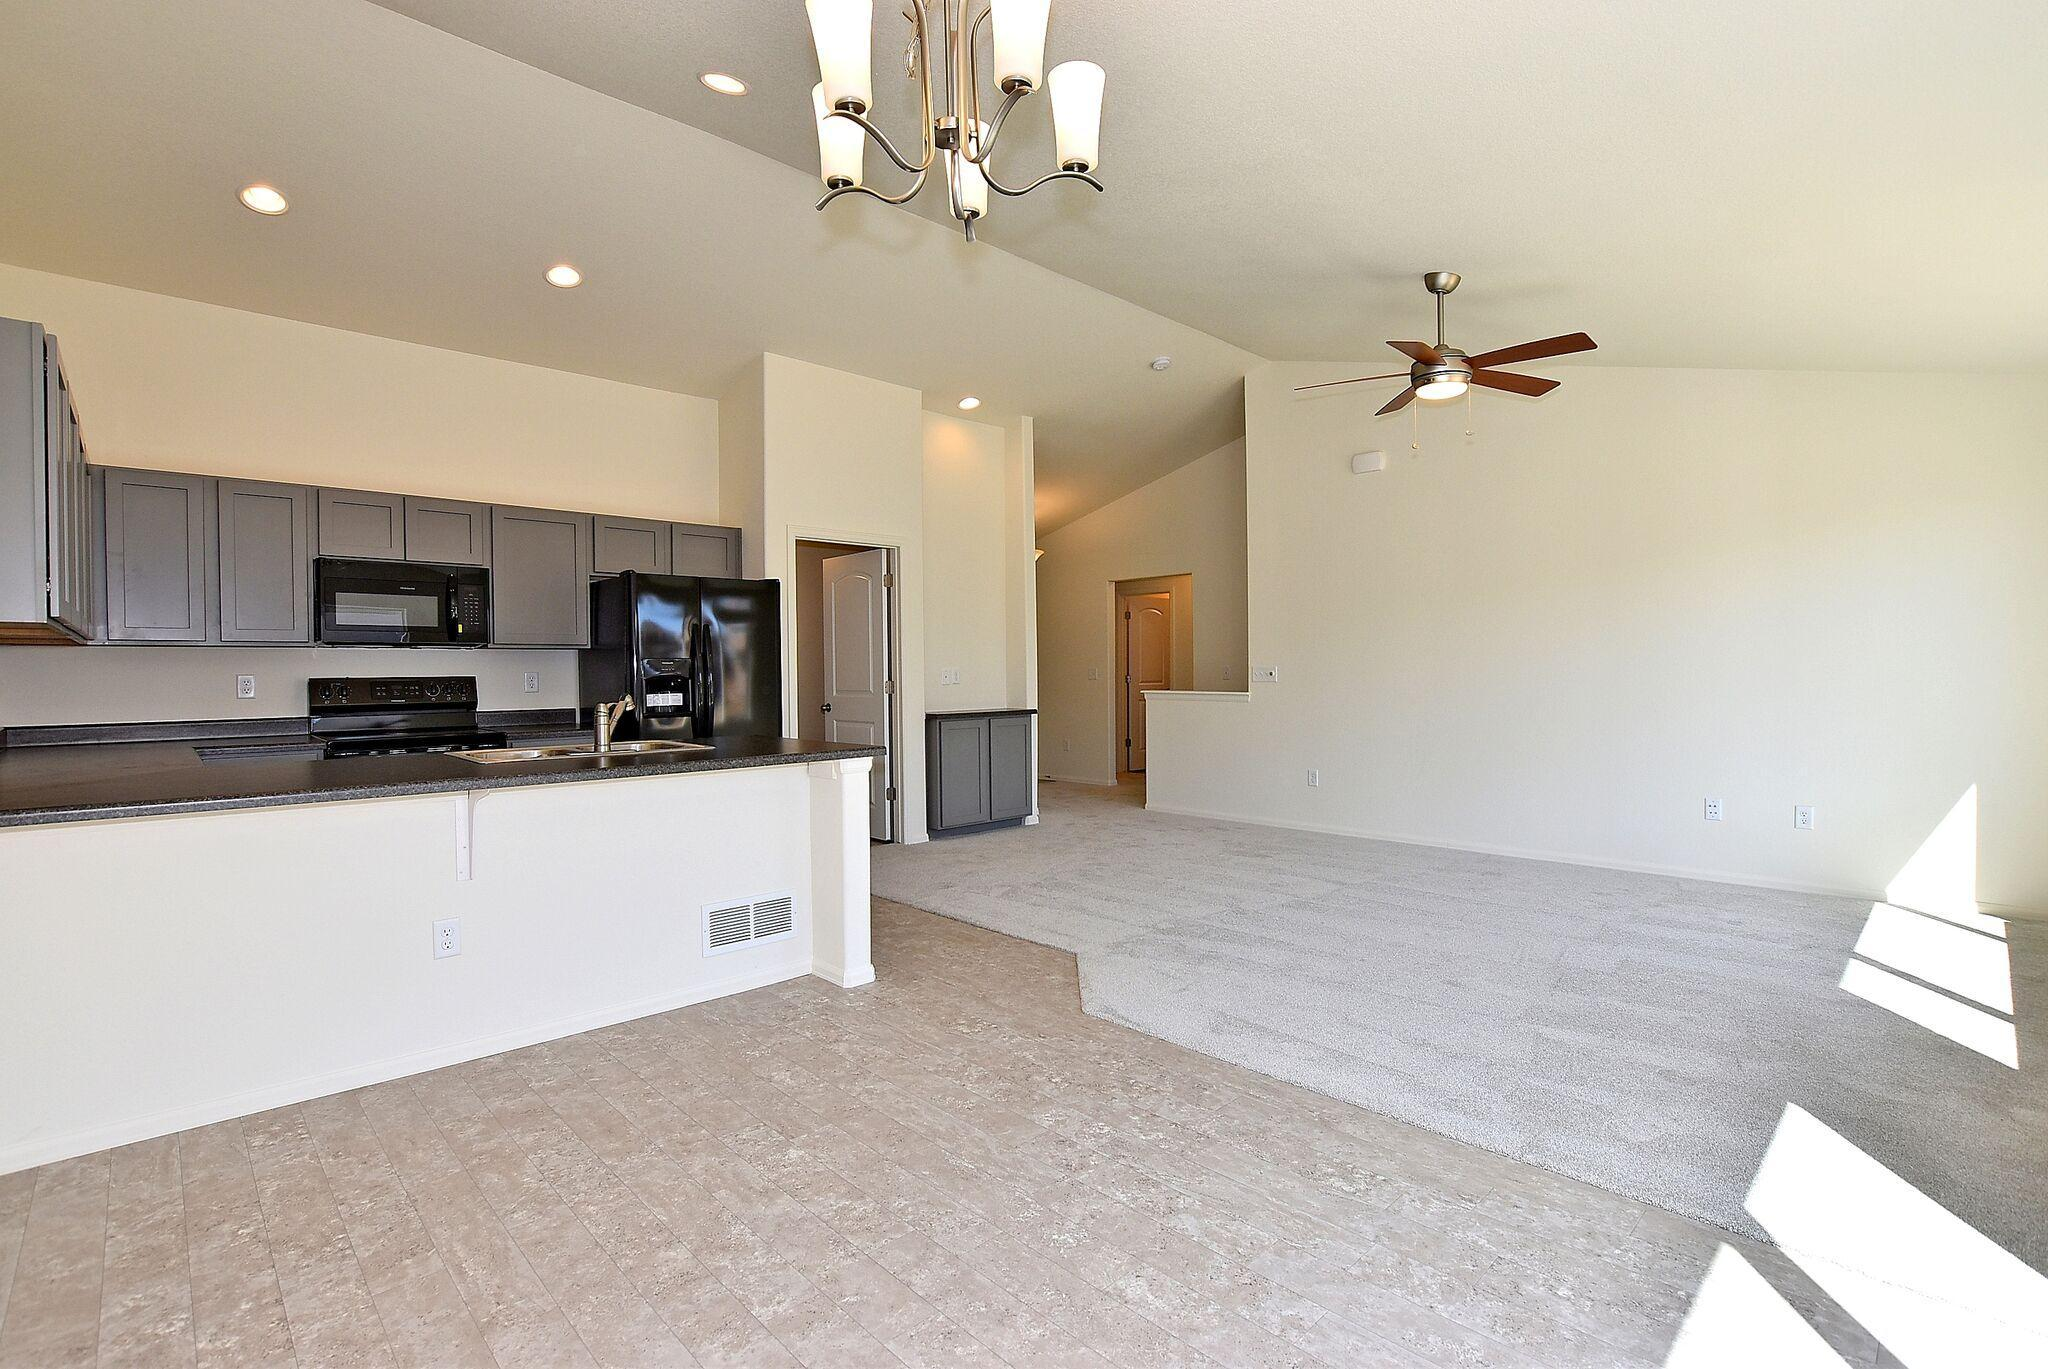 Kitchen featured in the Delaware By Journey Homes in Greeley, CO